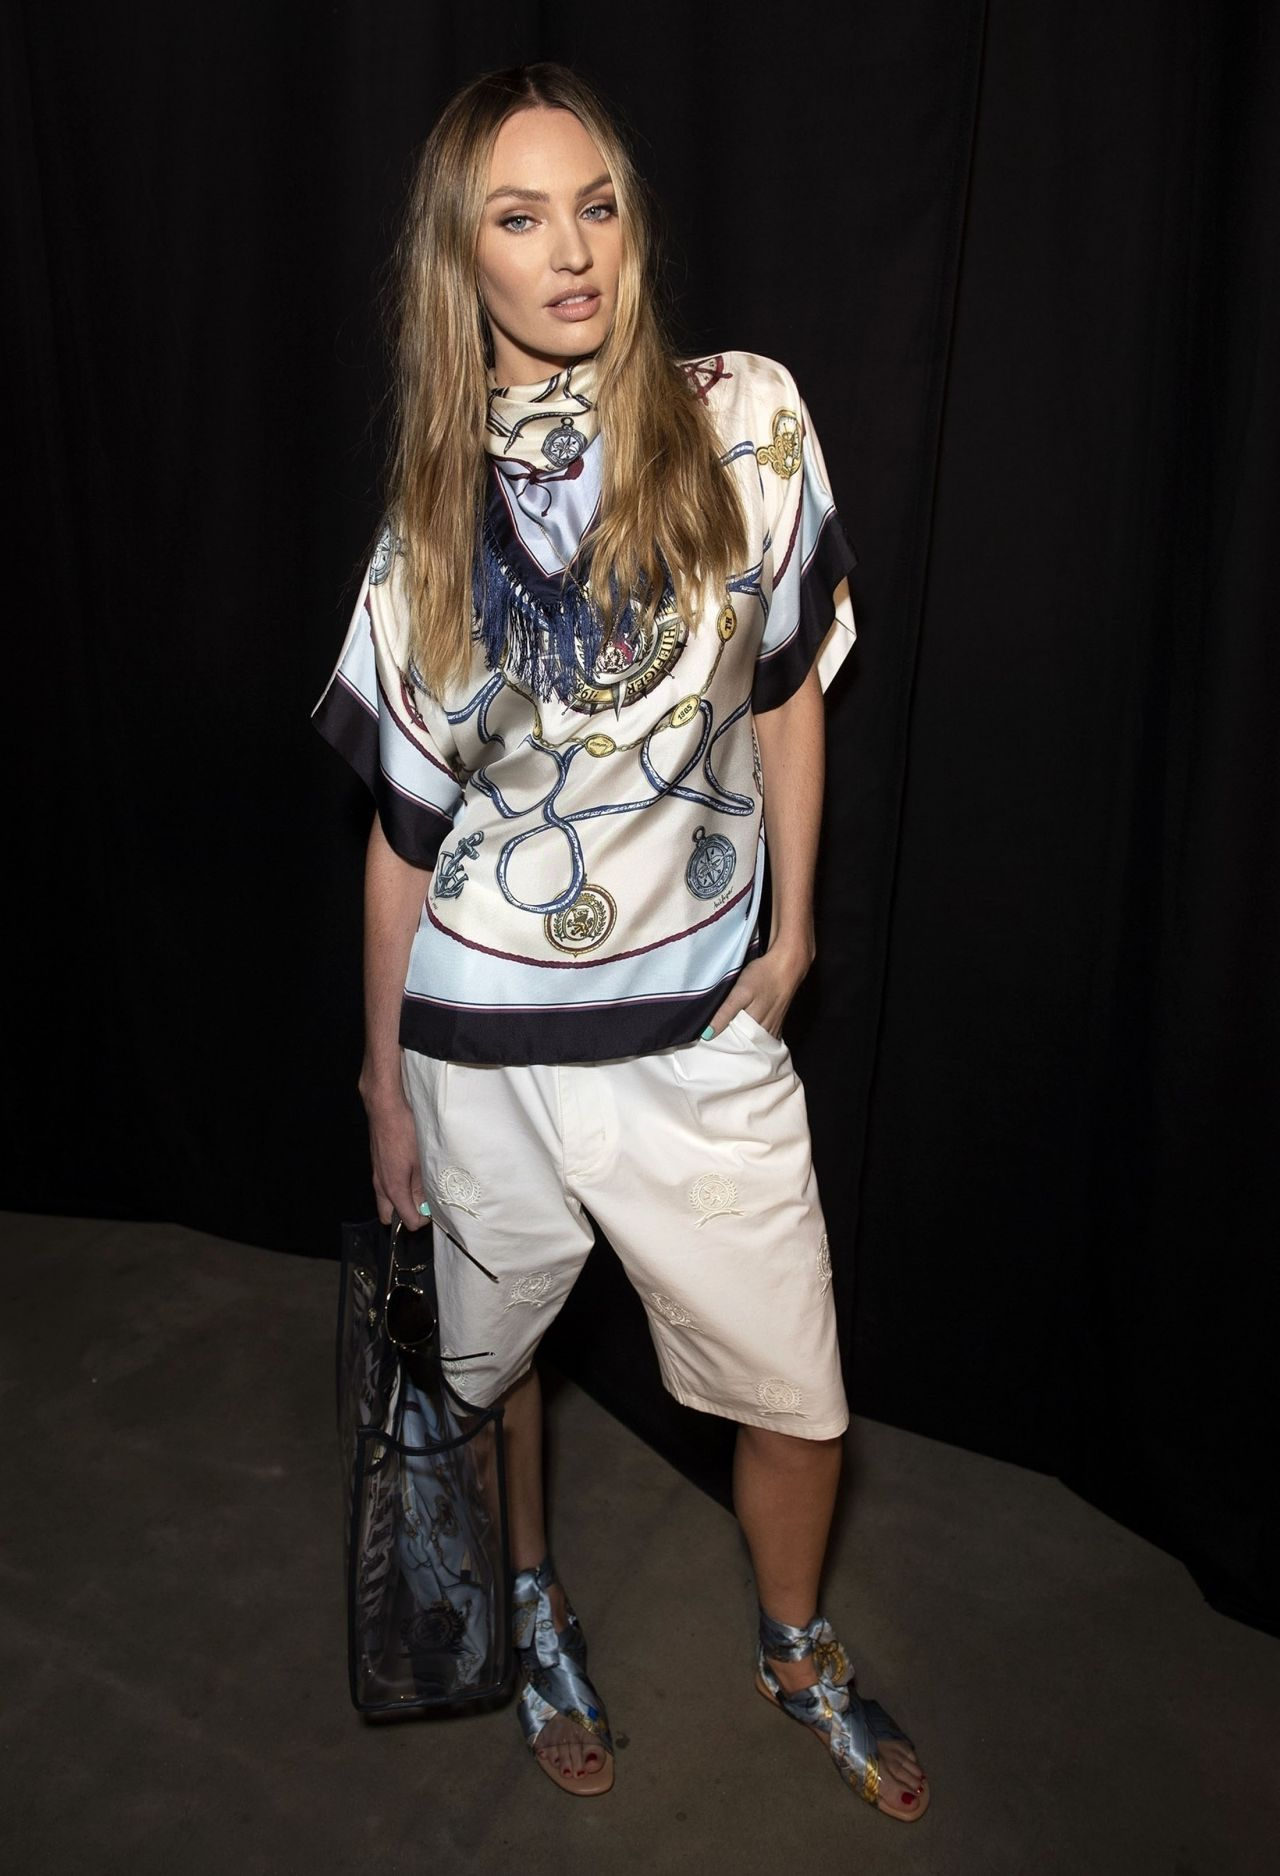 candice-swanepoel-tommy-hilfiger-spring-20-tommynow-show-at-london-fashion-week